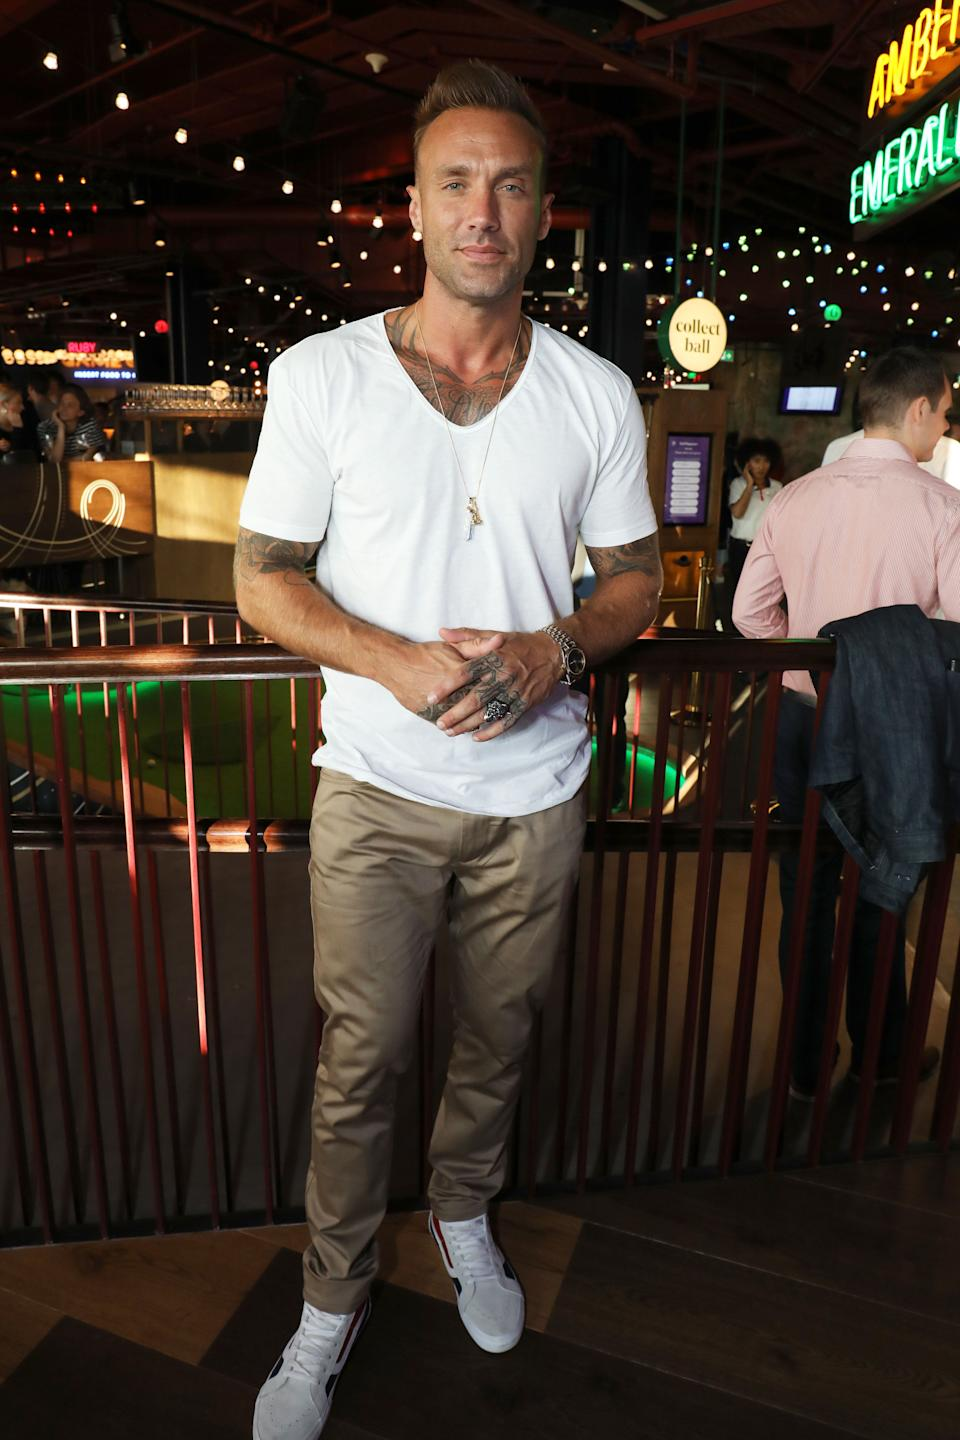 Calum has a number of strings to his reality TV bow, and frankly each of them is more obscure than the last.<br /><br />You may well have seen him finish in third place in 2015's CBB final, returning to the house two years later, or his stint on Celebs Go Dating.<br /><br />However, his appearances on Celebrity Love Island, Famously Single and his own show, Totally Calum Best, are a bit more obscure. And as for Celebrity Bainisteoir - we're still not exactly sure what that is...